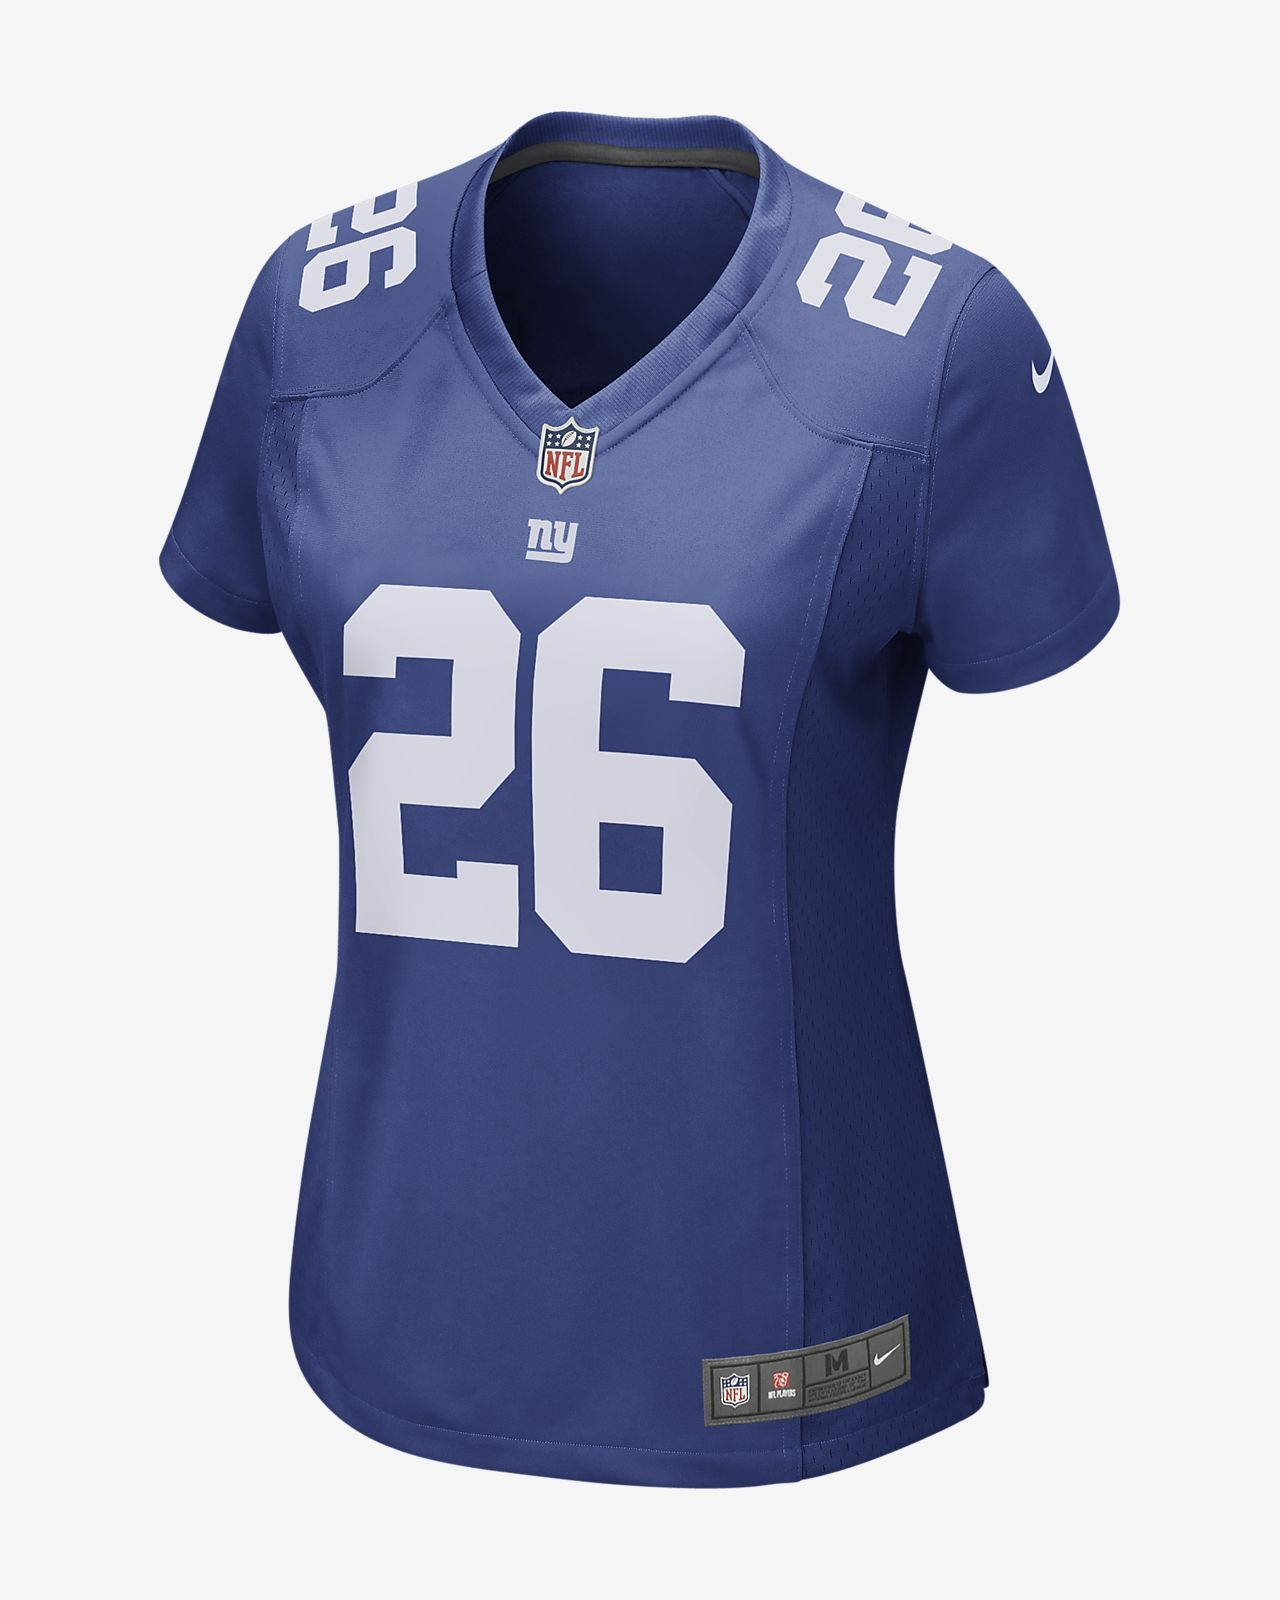 Trend Mark Nfl New York Giants Jersey Activewear Clothing, Shoes, Accessories